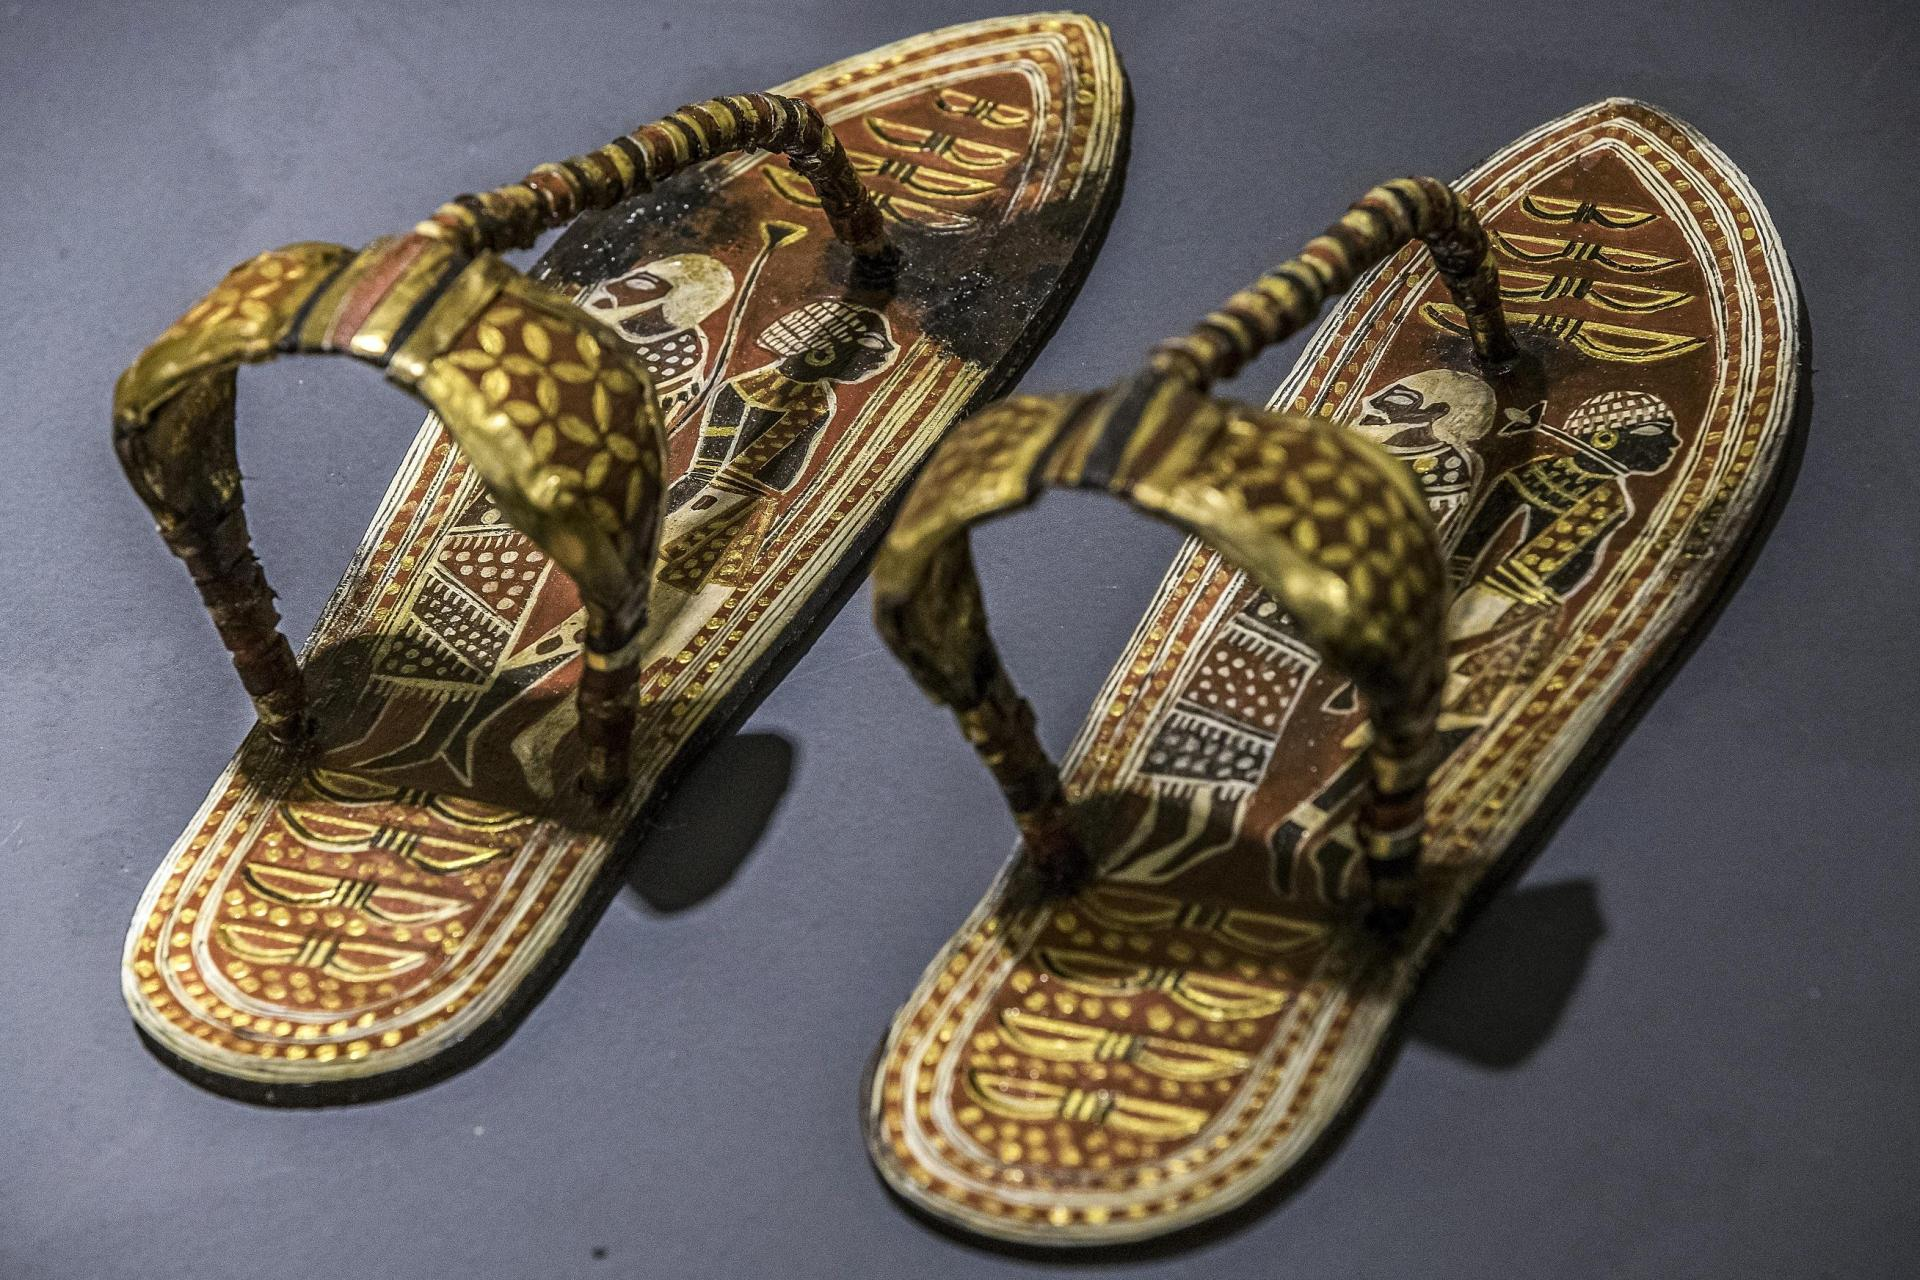 A replica of a sandal found at the tomb of Tutankhamun.